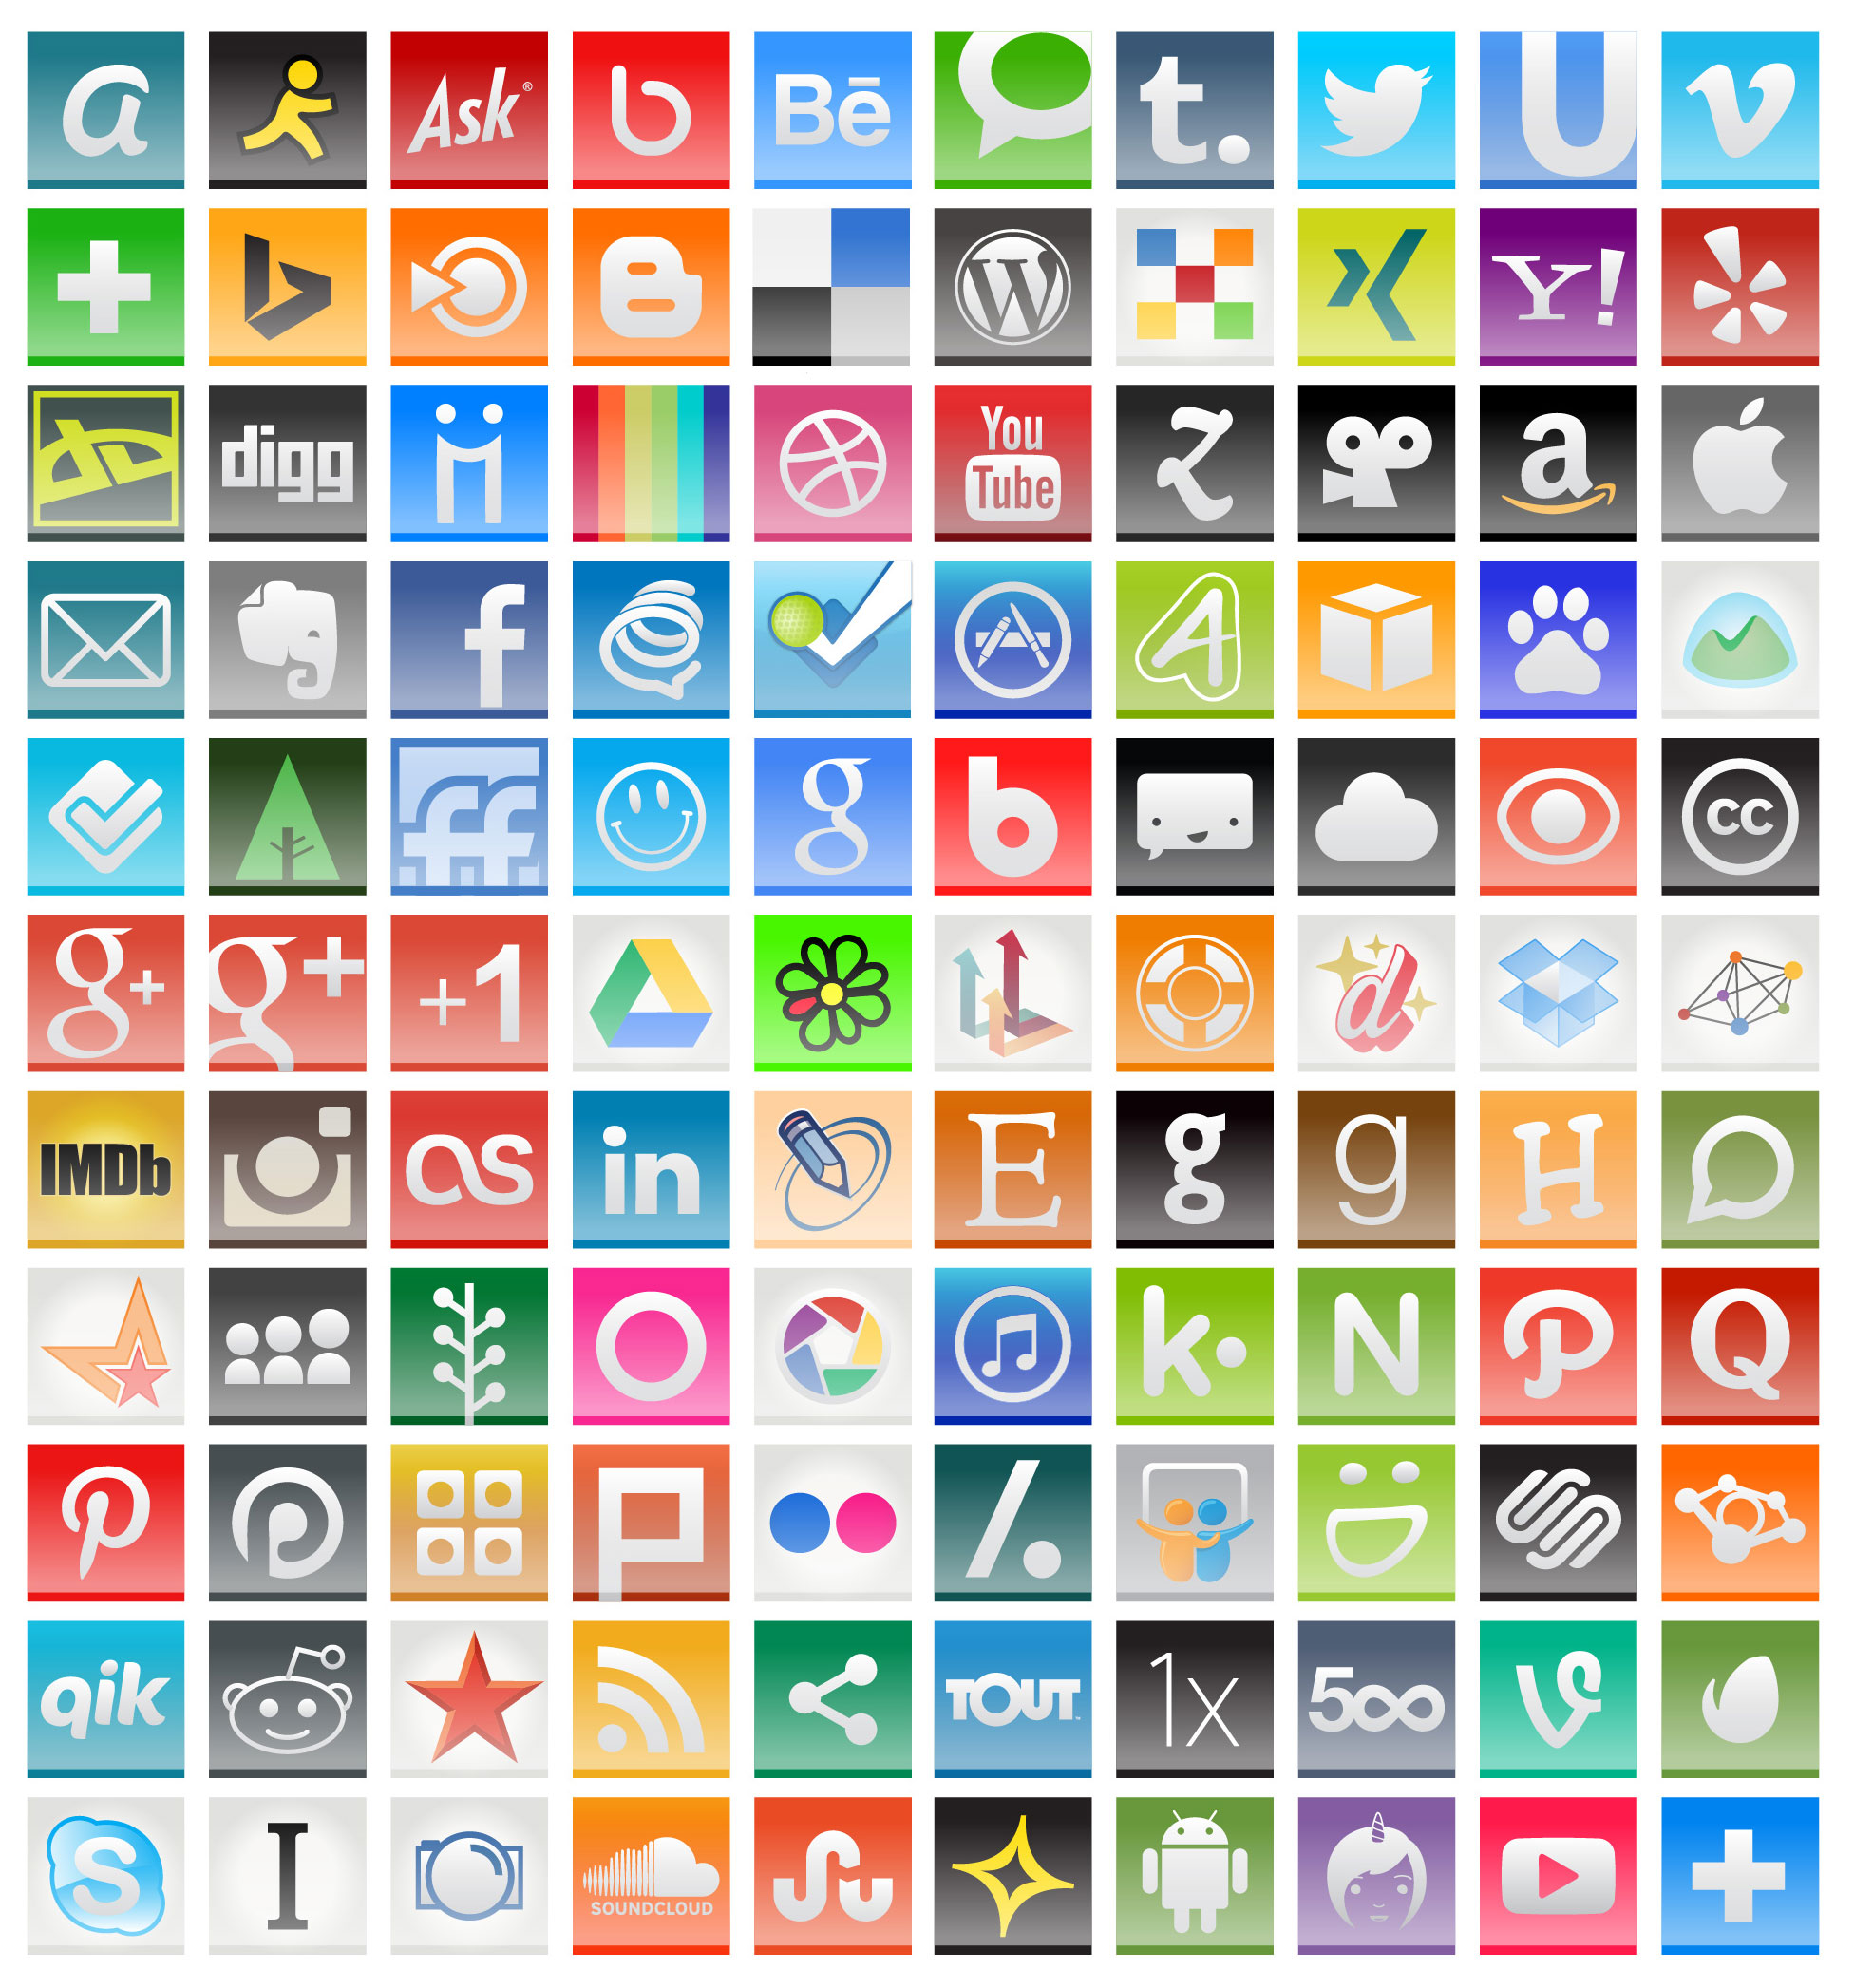 Social Media Icons for Freelance Writing Marketing Web Content